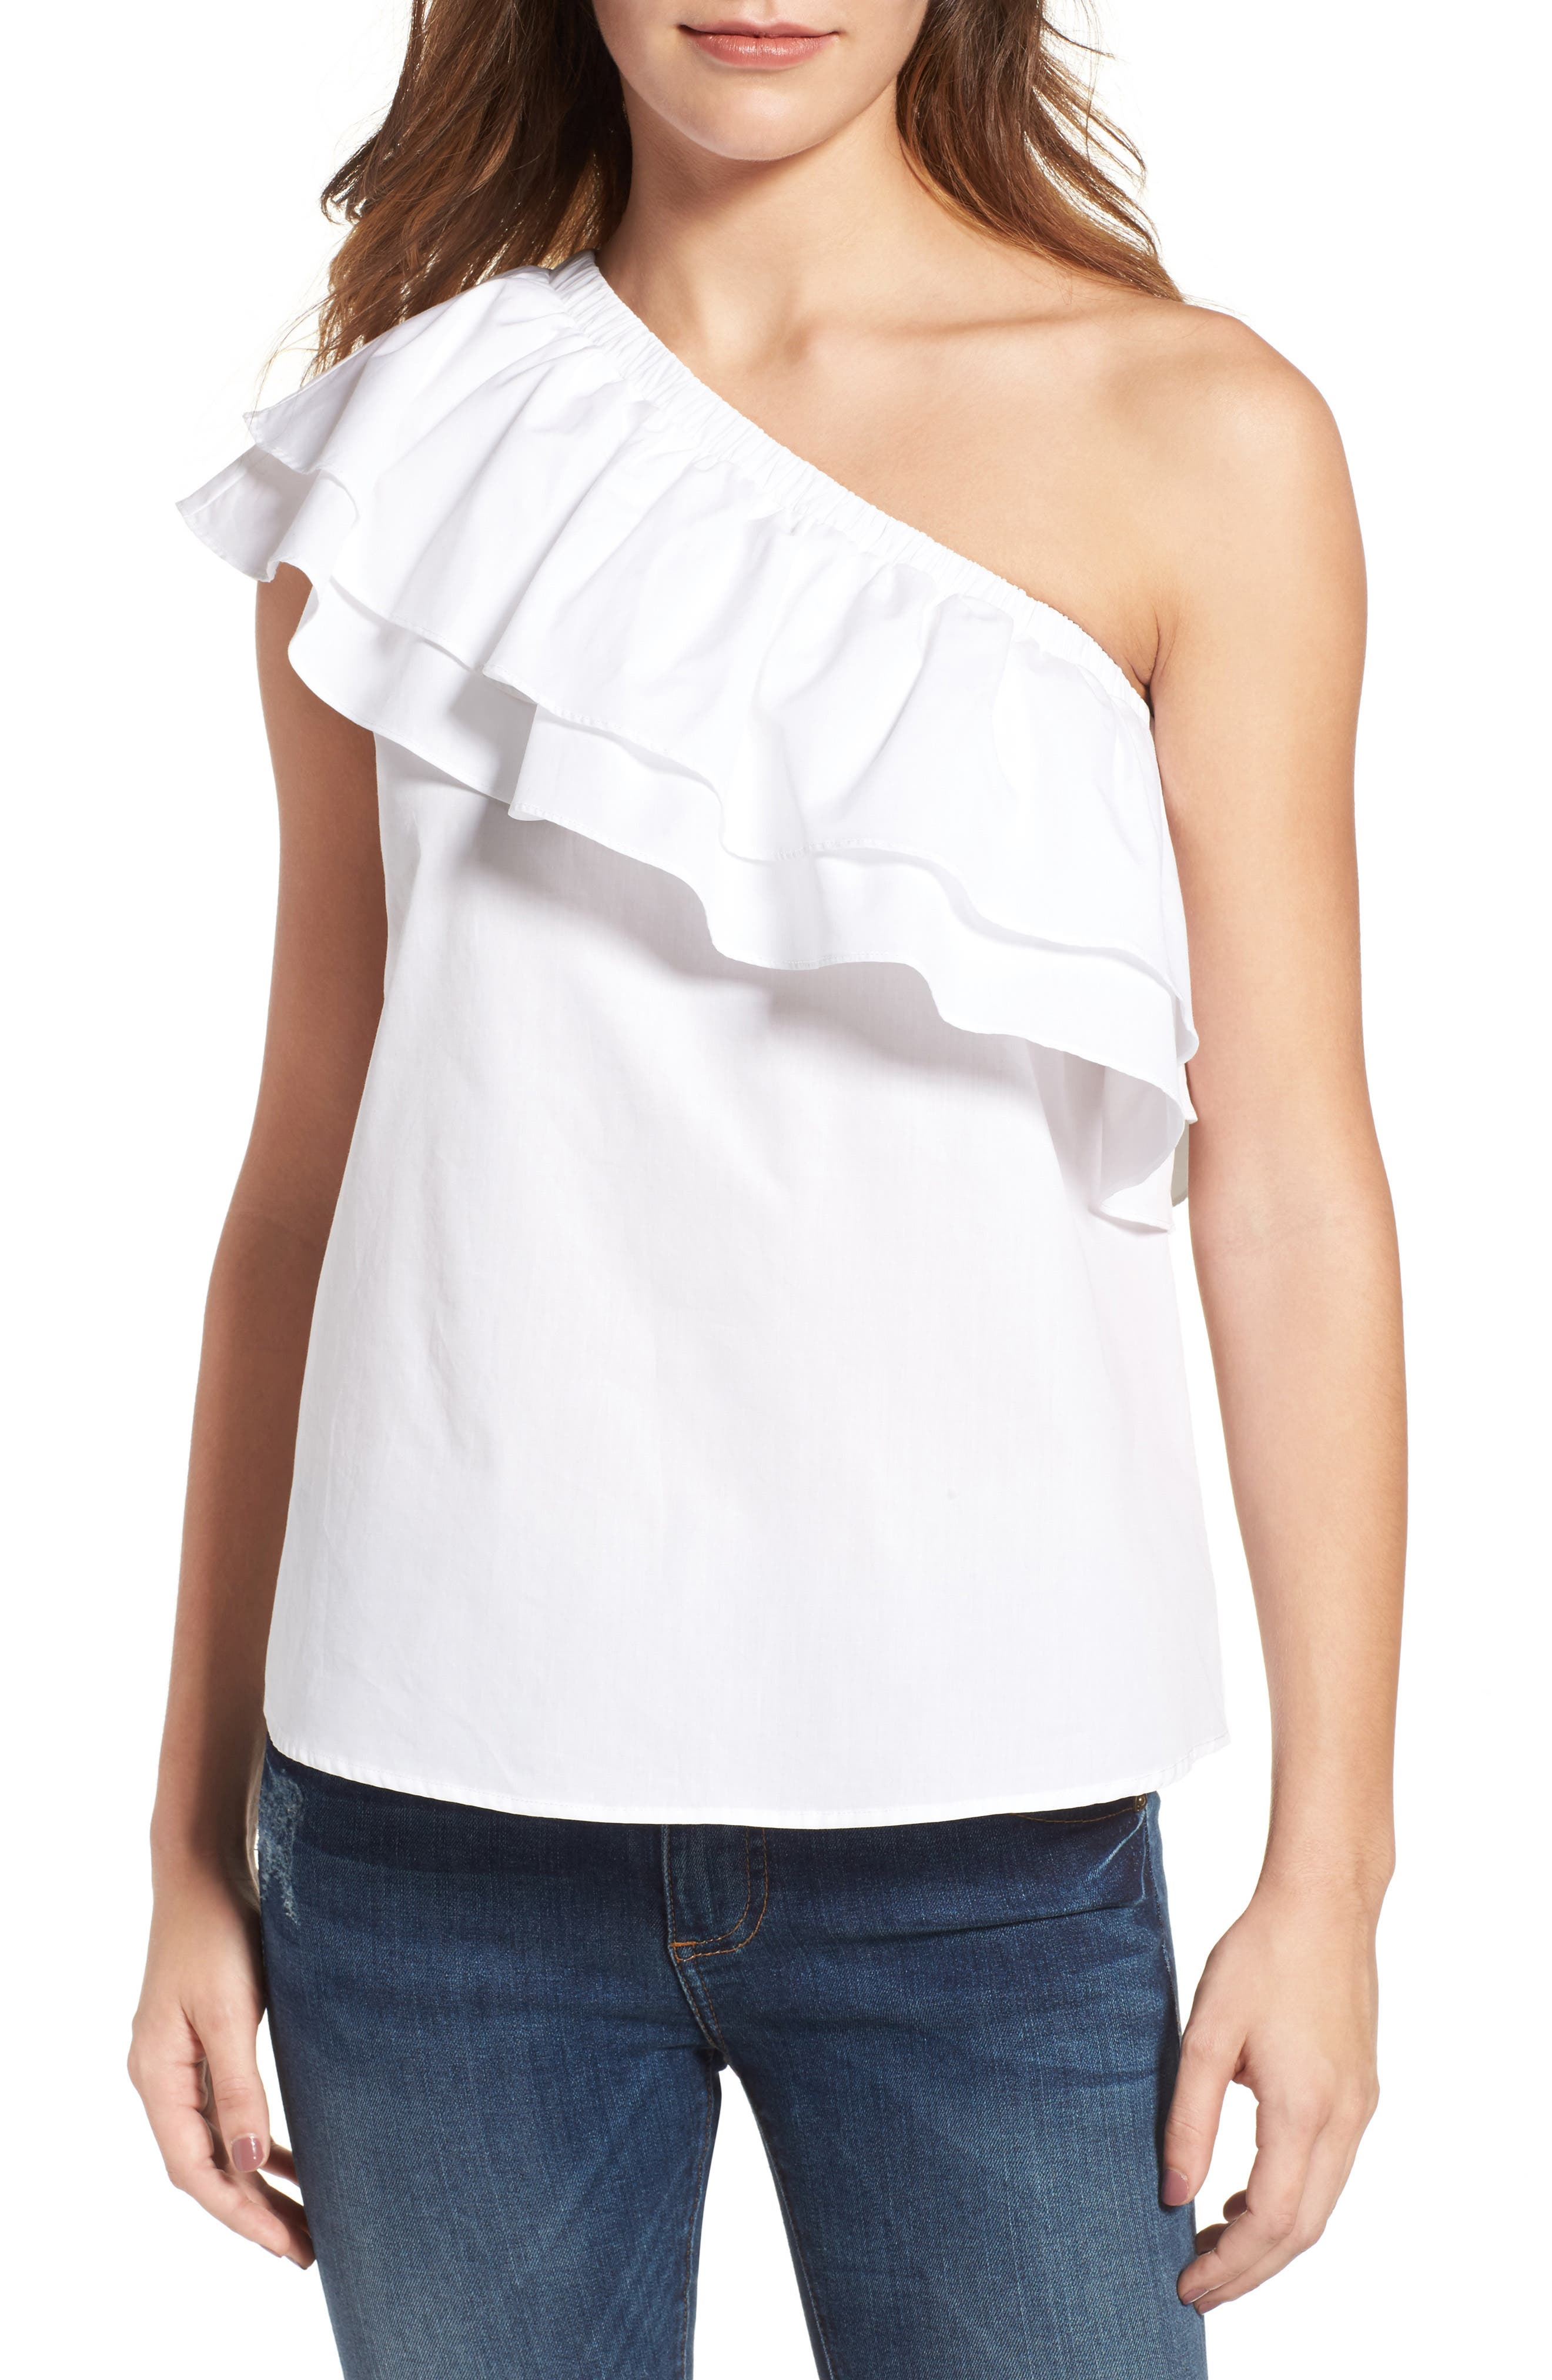 Alternate Image 1 Selected - Halogen® One-Shoulder Cotton Poplin Top (Regular & Petite)